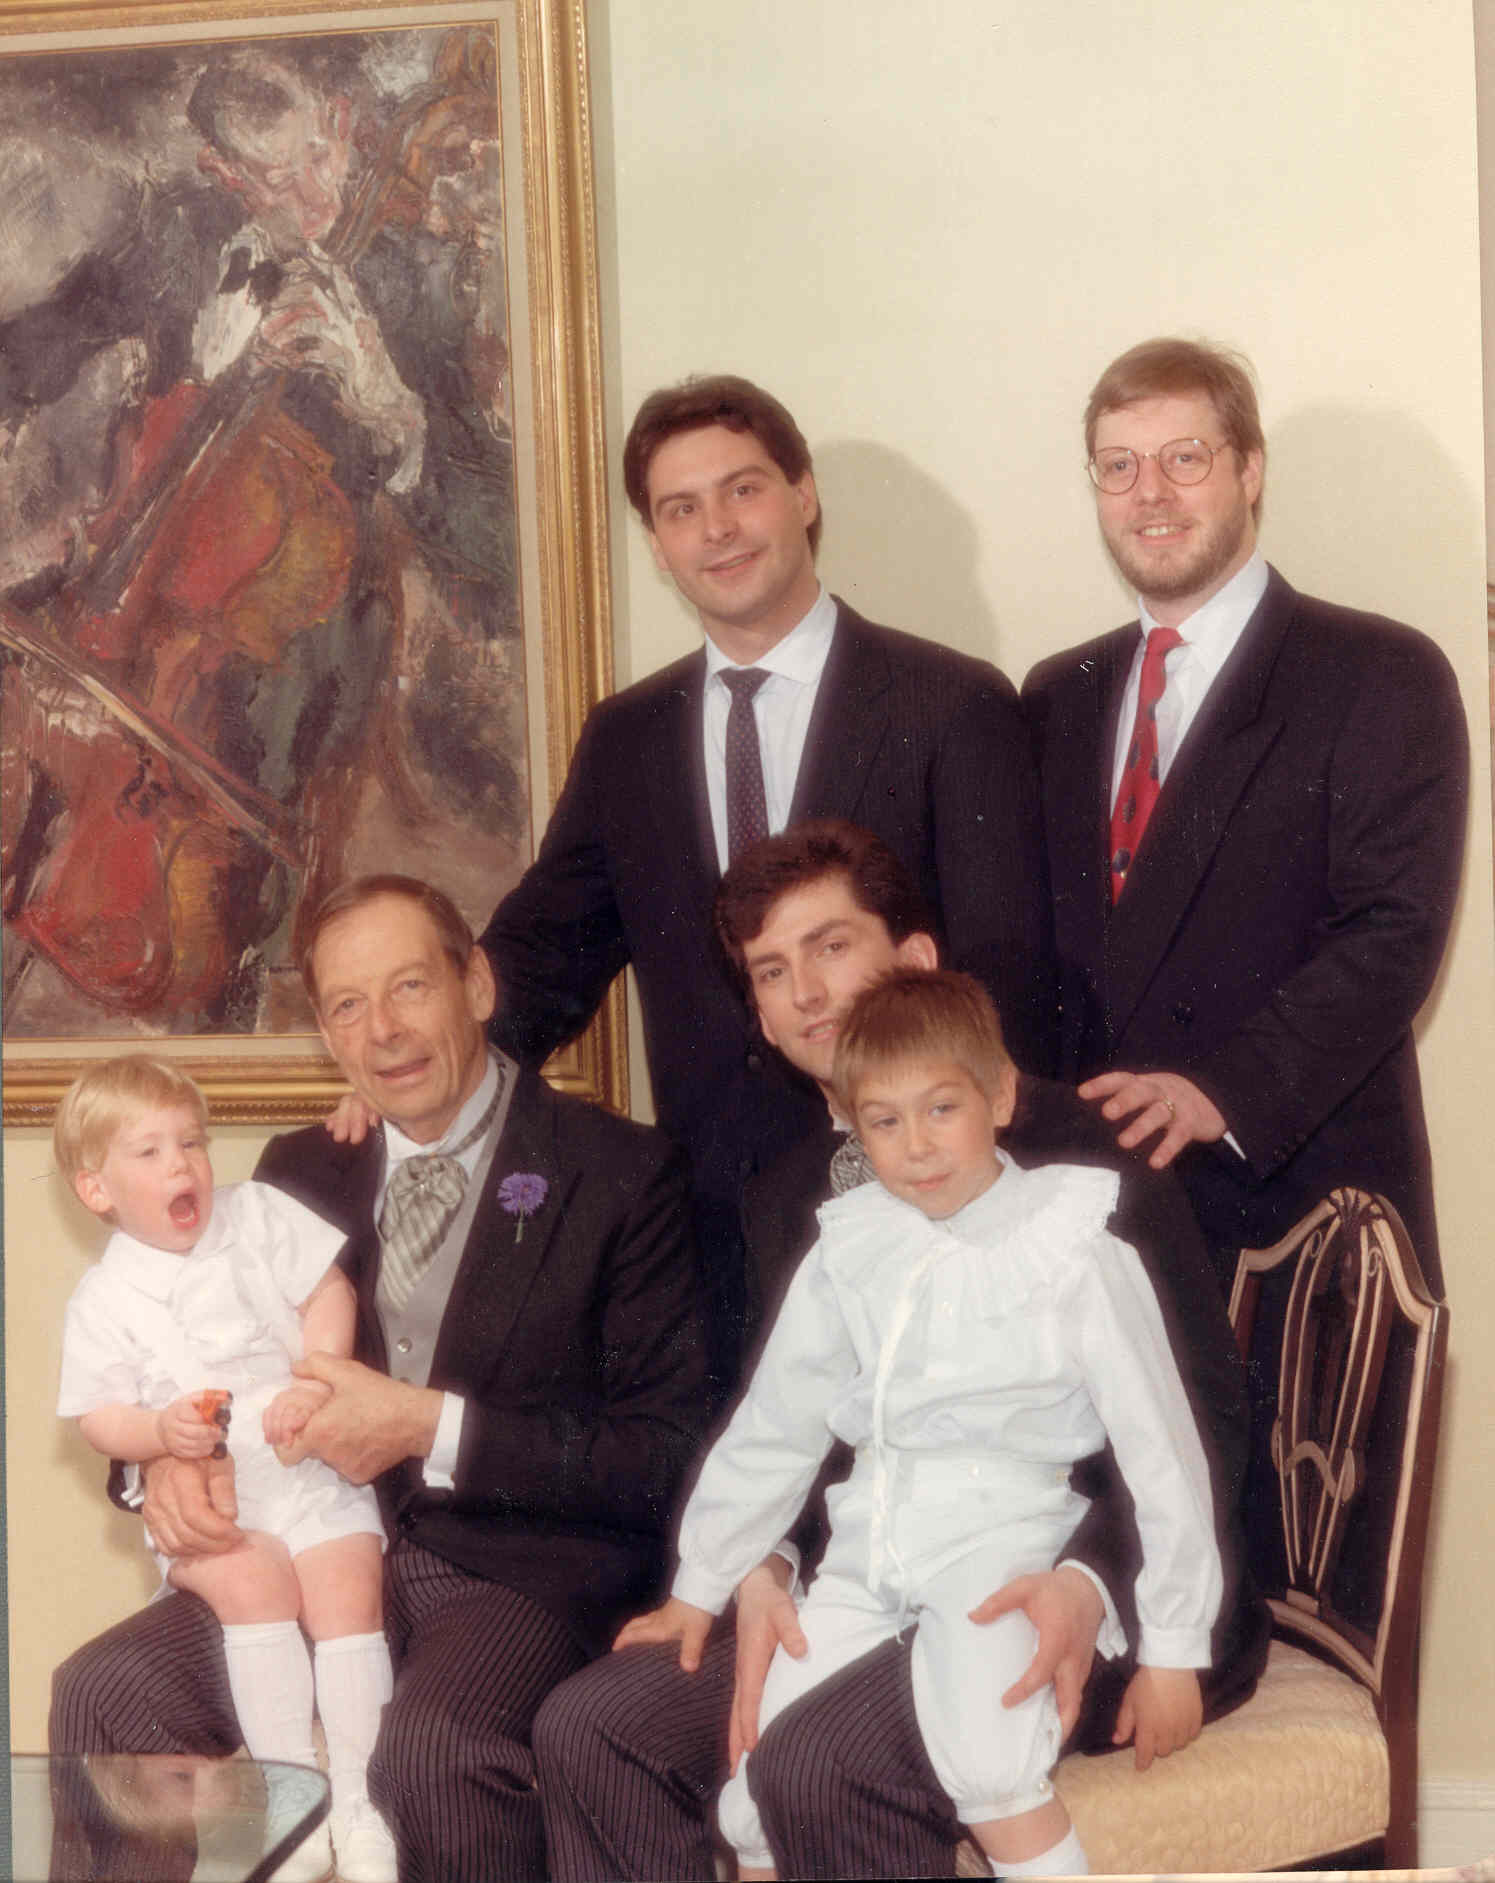 Three generations of Tishman men and a southern invader on my wedding day in 1988. Standing is Andrew Tishman (left) and Douglas Tishman. Seated is Edward holding his grandson Adam and me holding my nephew Justin. It was a magical day in New York.